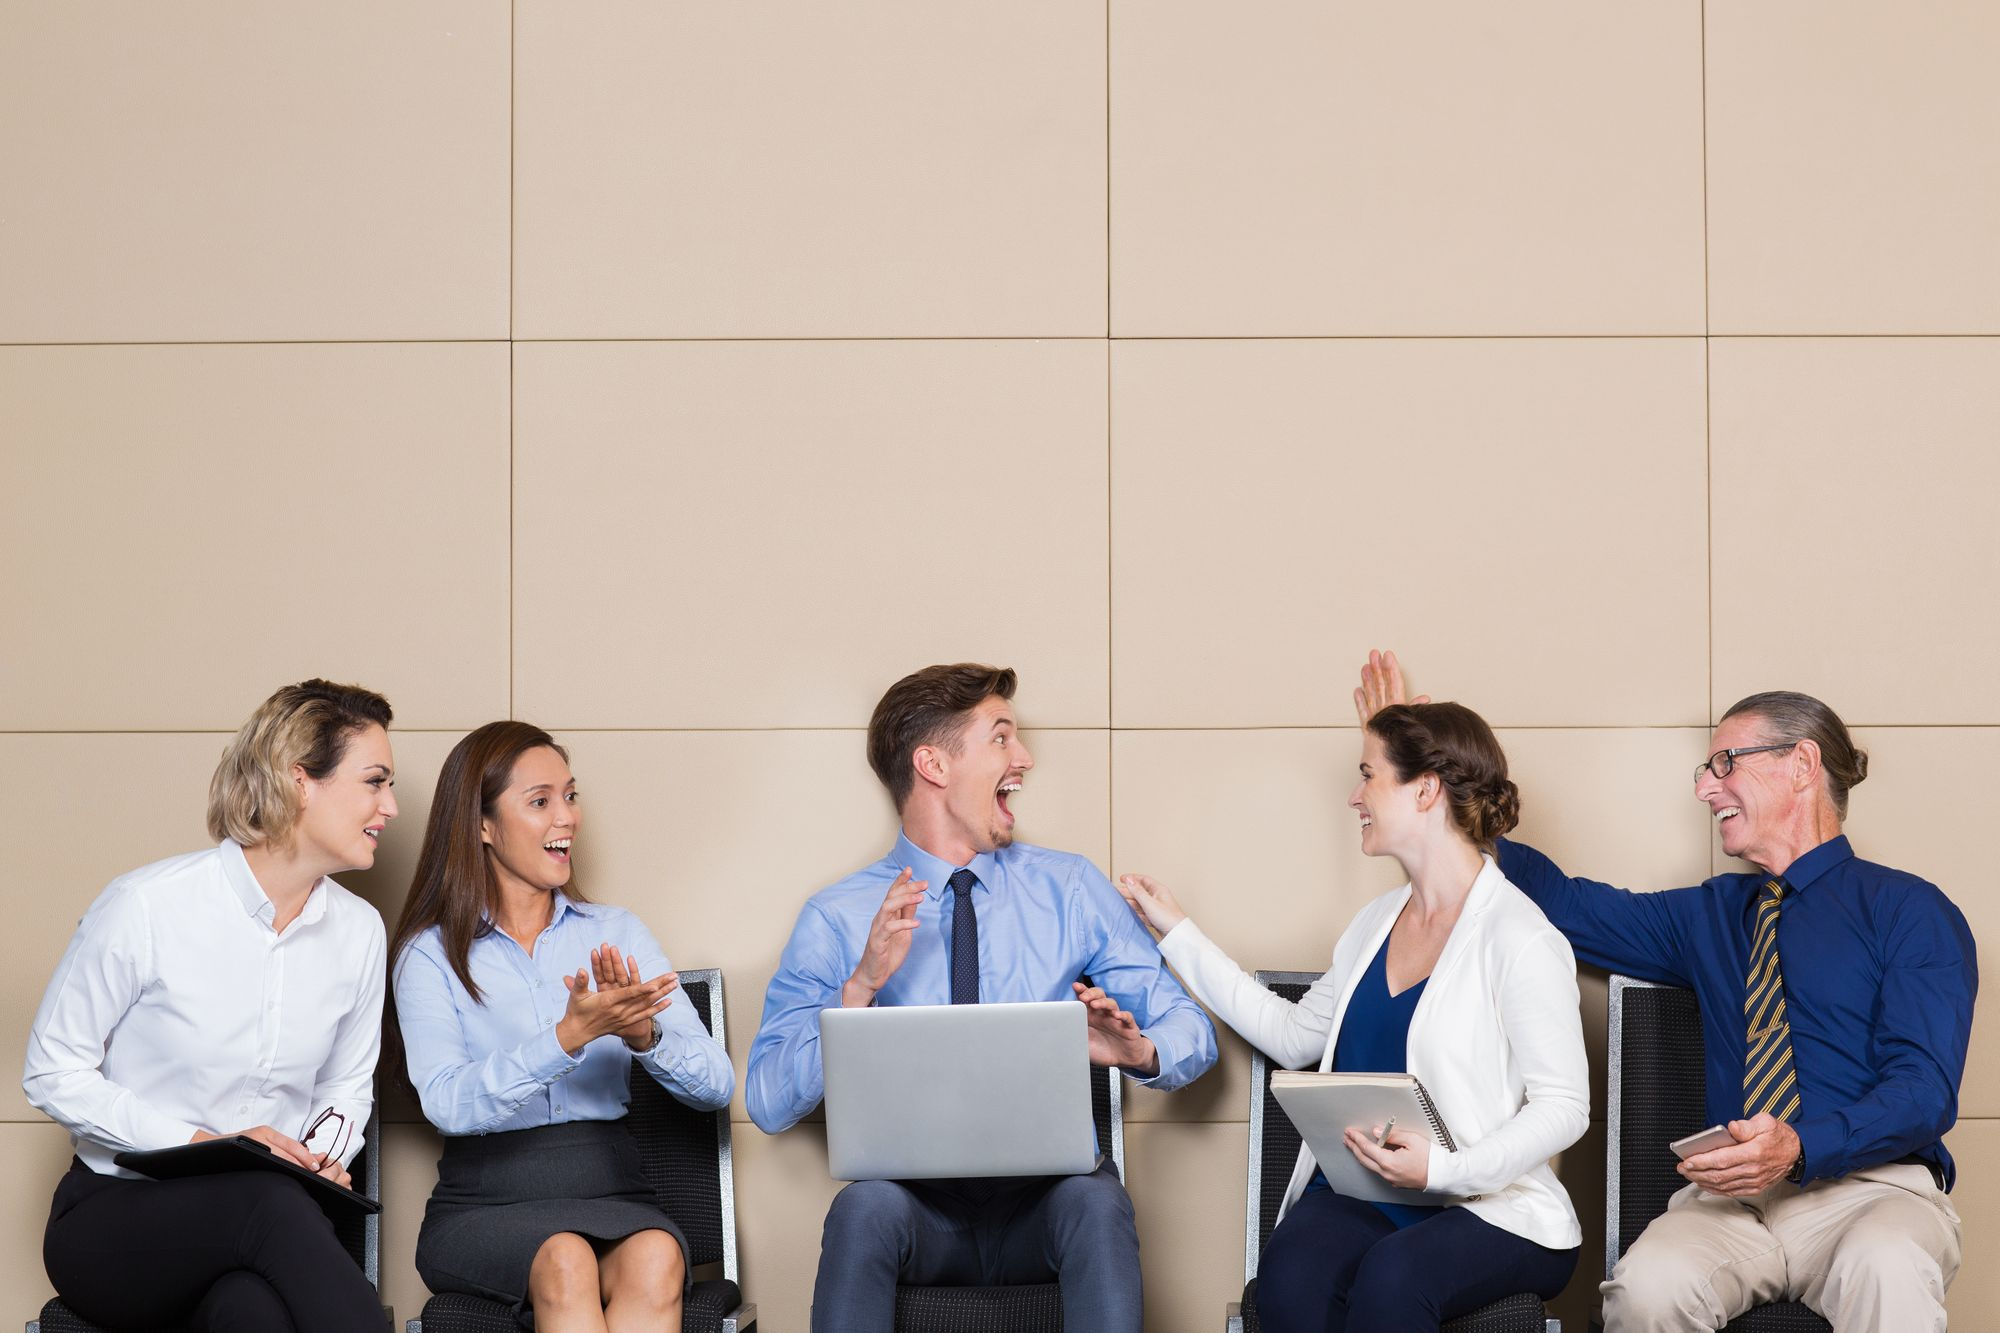 How To Prepare for a Group Interviews